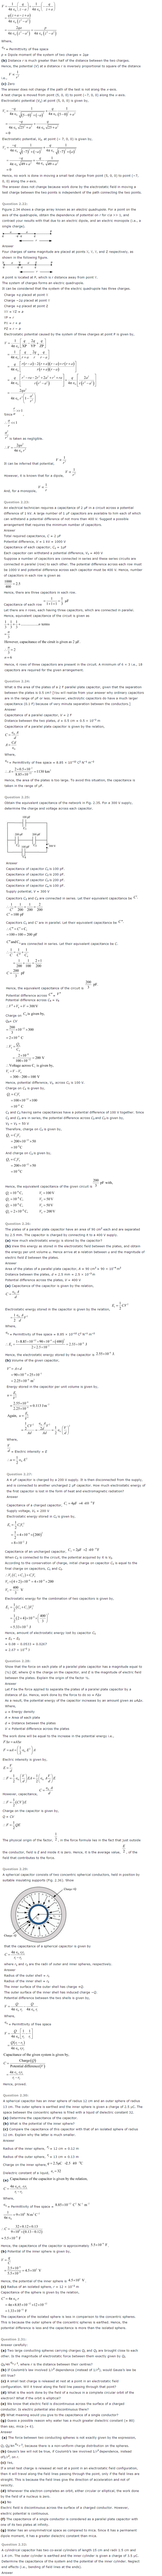 NCERT Solutions for Class 12th Physics Chapter 2   Electrostatic Potential And Capacitance Image by AglaSem